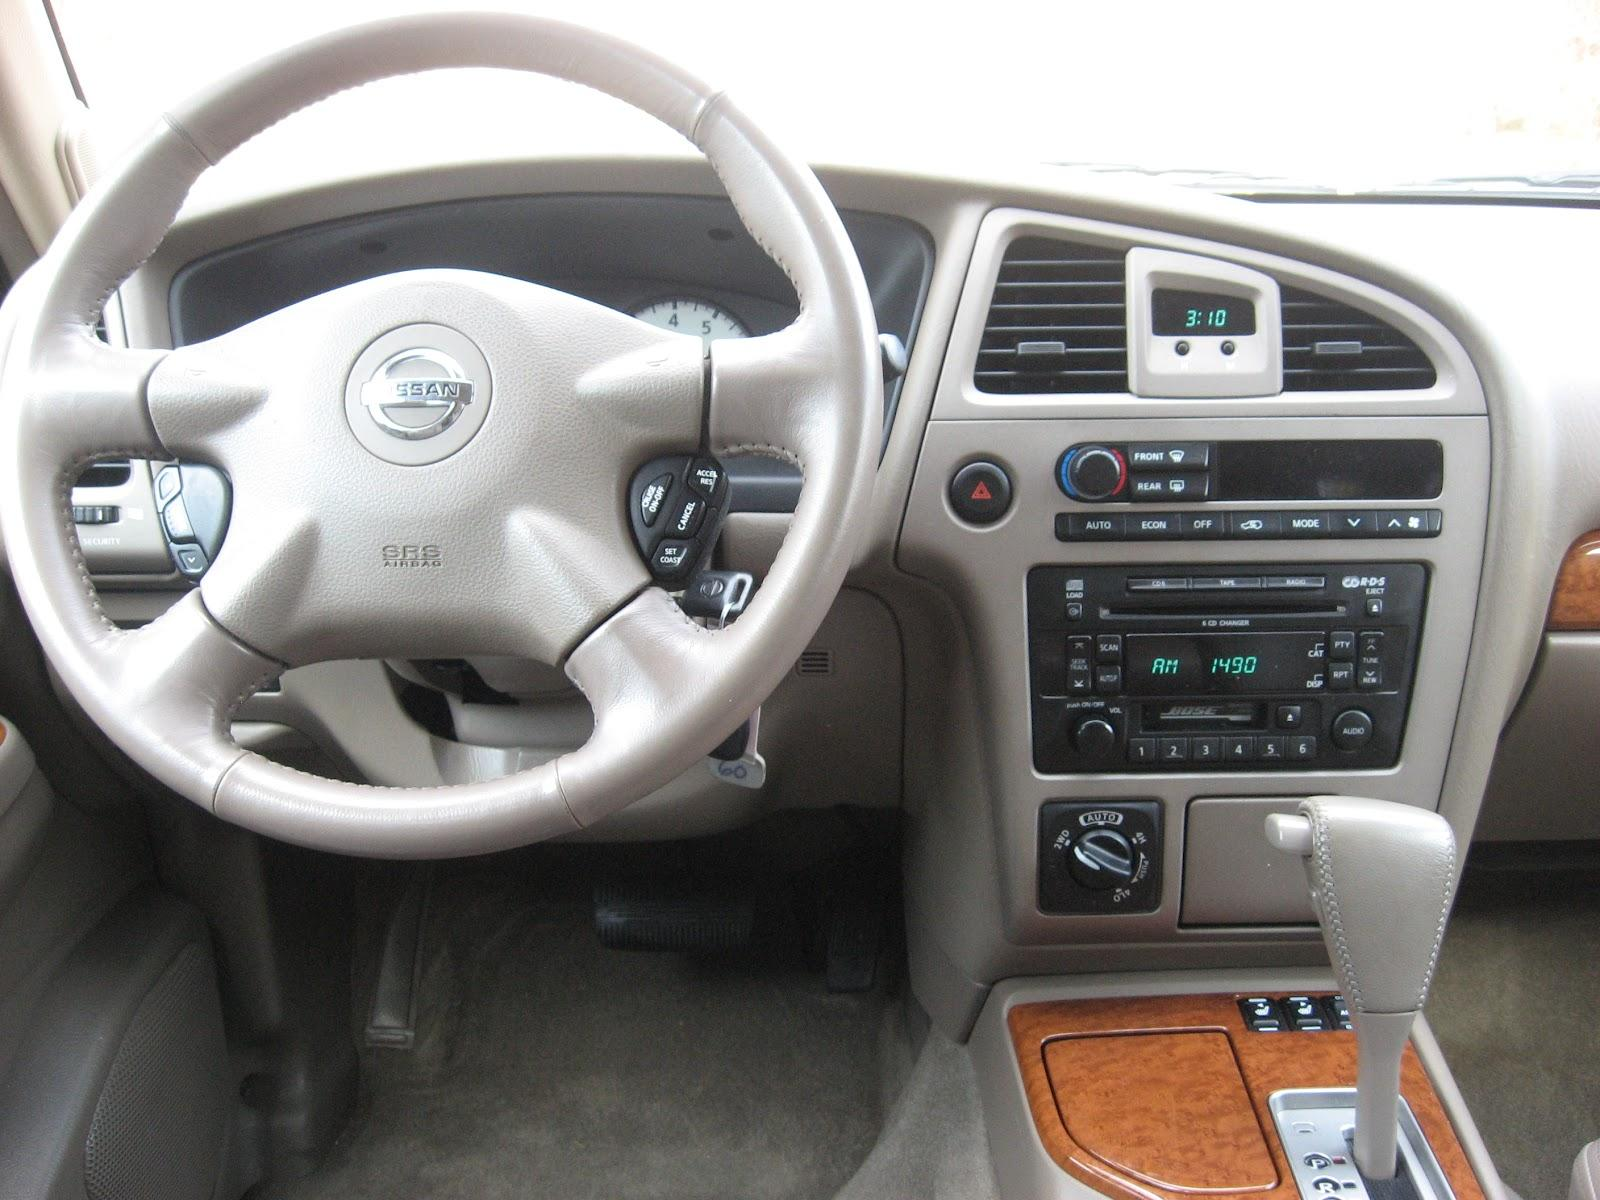 Used 2001 Nissan Pathfinder For Sale Pricing Features